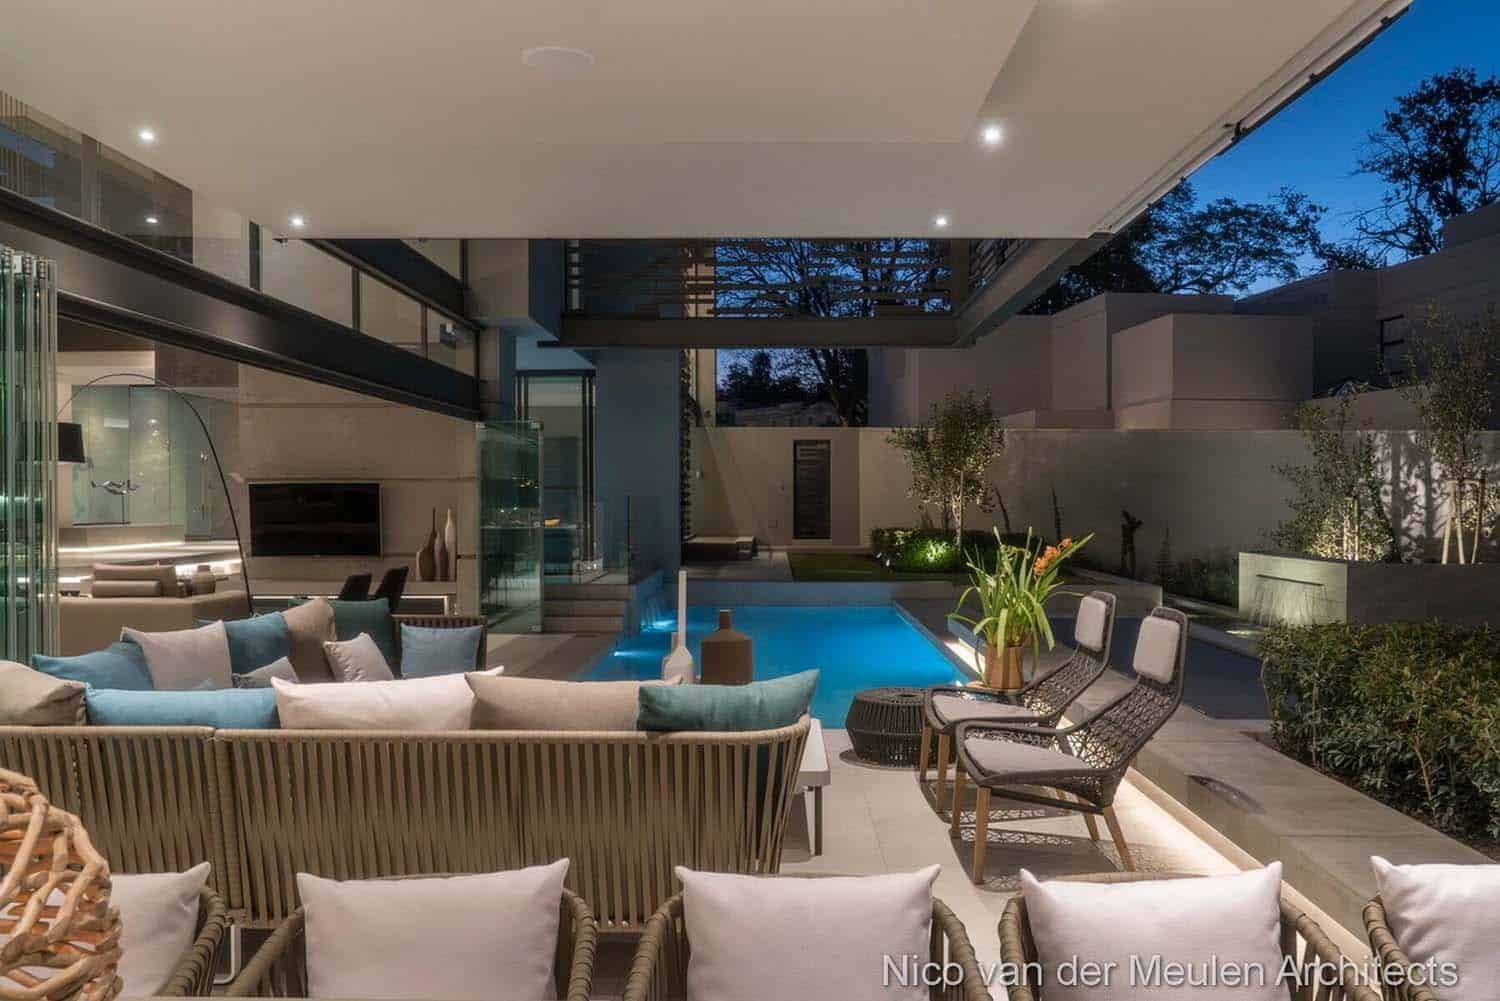 Forest Road Home-Nico van der Meulen Architects-21-1 Kindesign